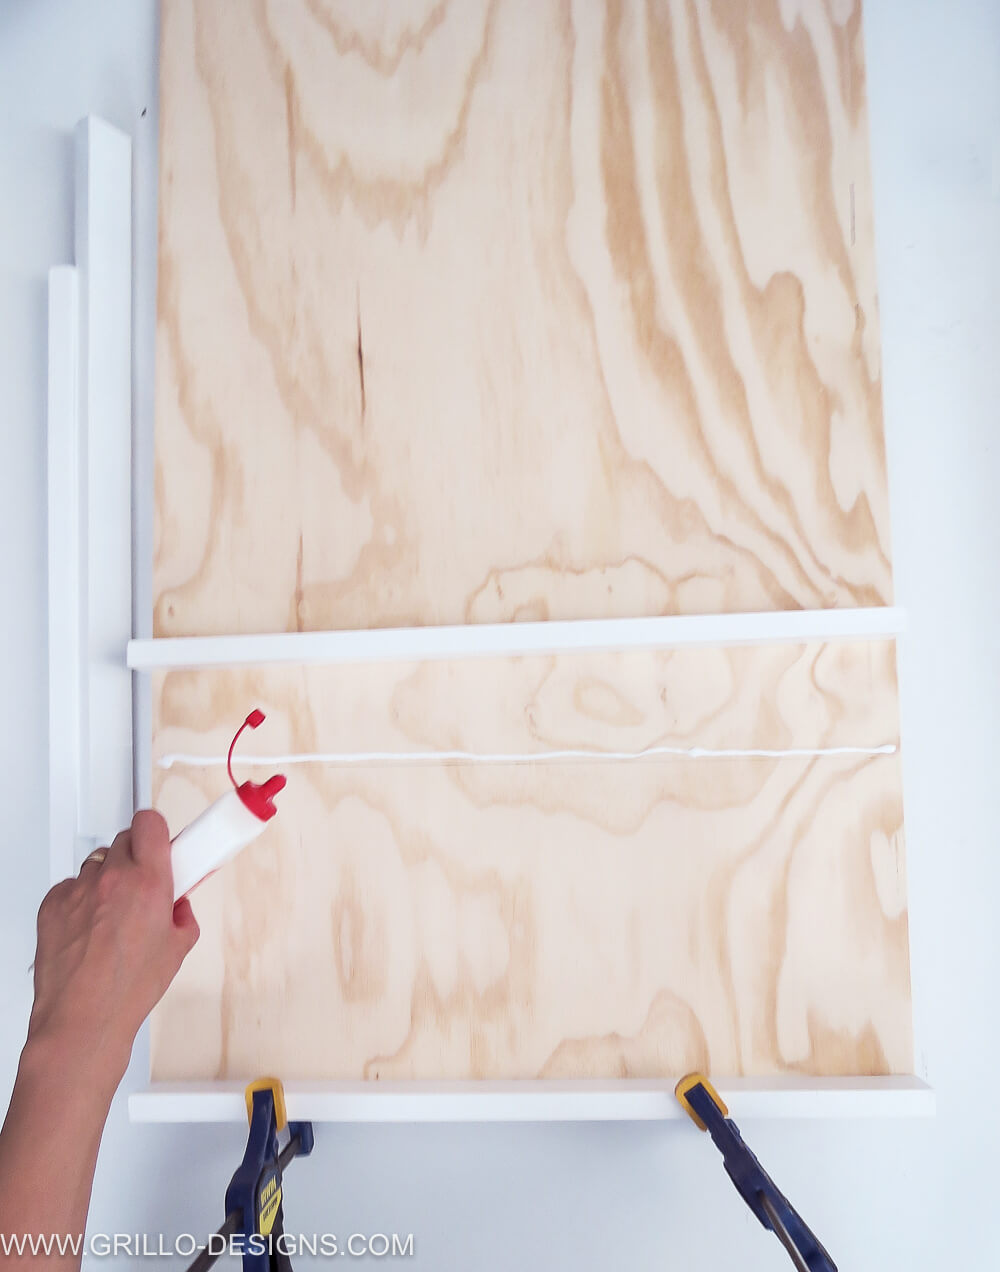 Apply wood glue to the plywood panel to make a soft toy storage shelf / grillo designs